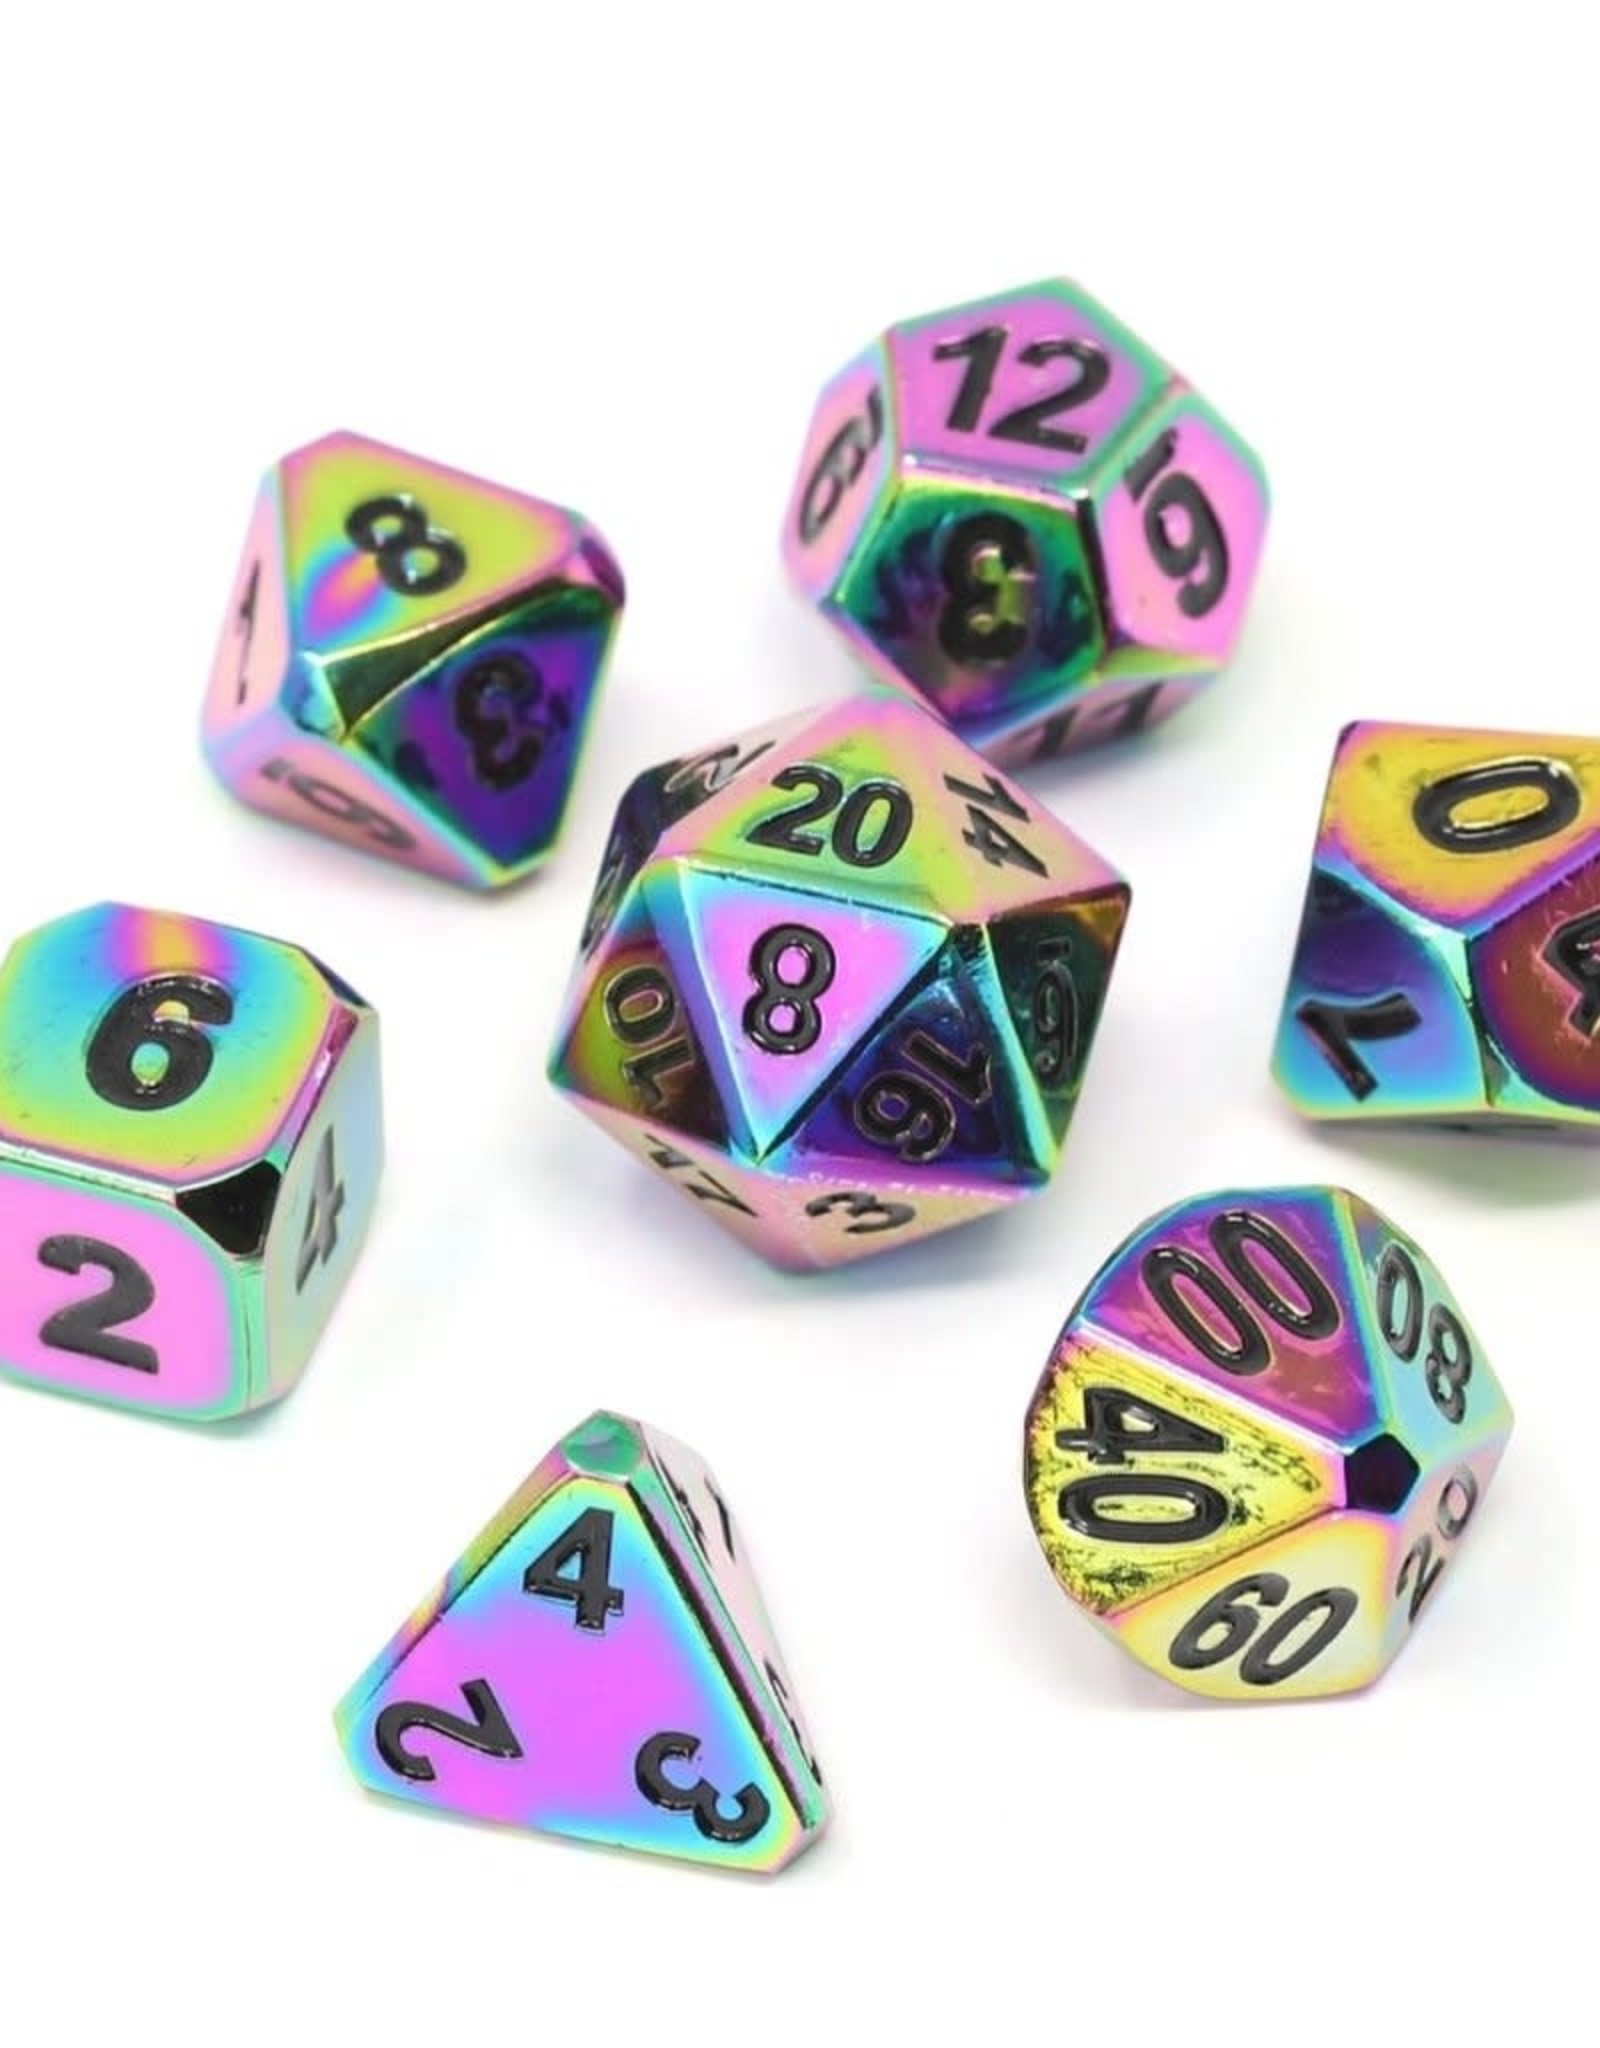 Die Hard Metal Forge Dice Set-Scorched Rainbow w/Black